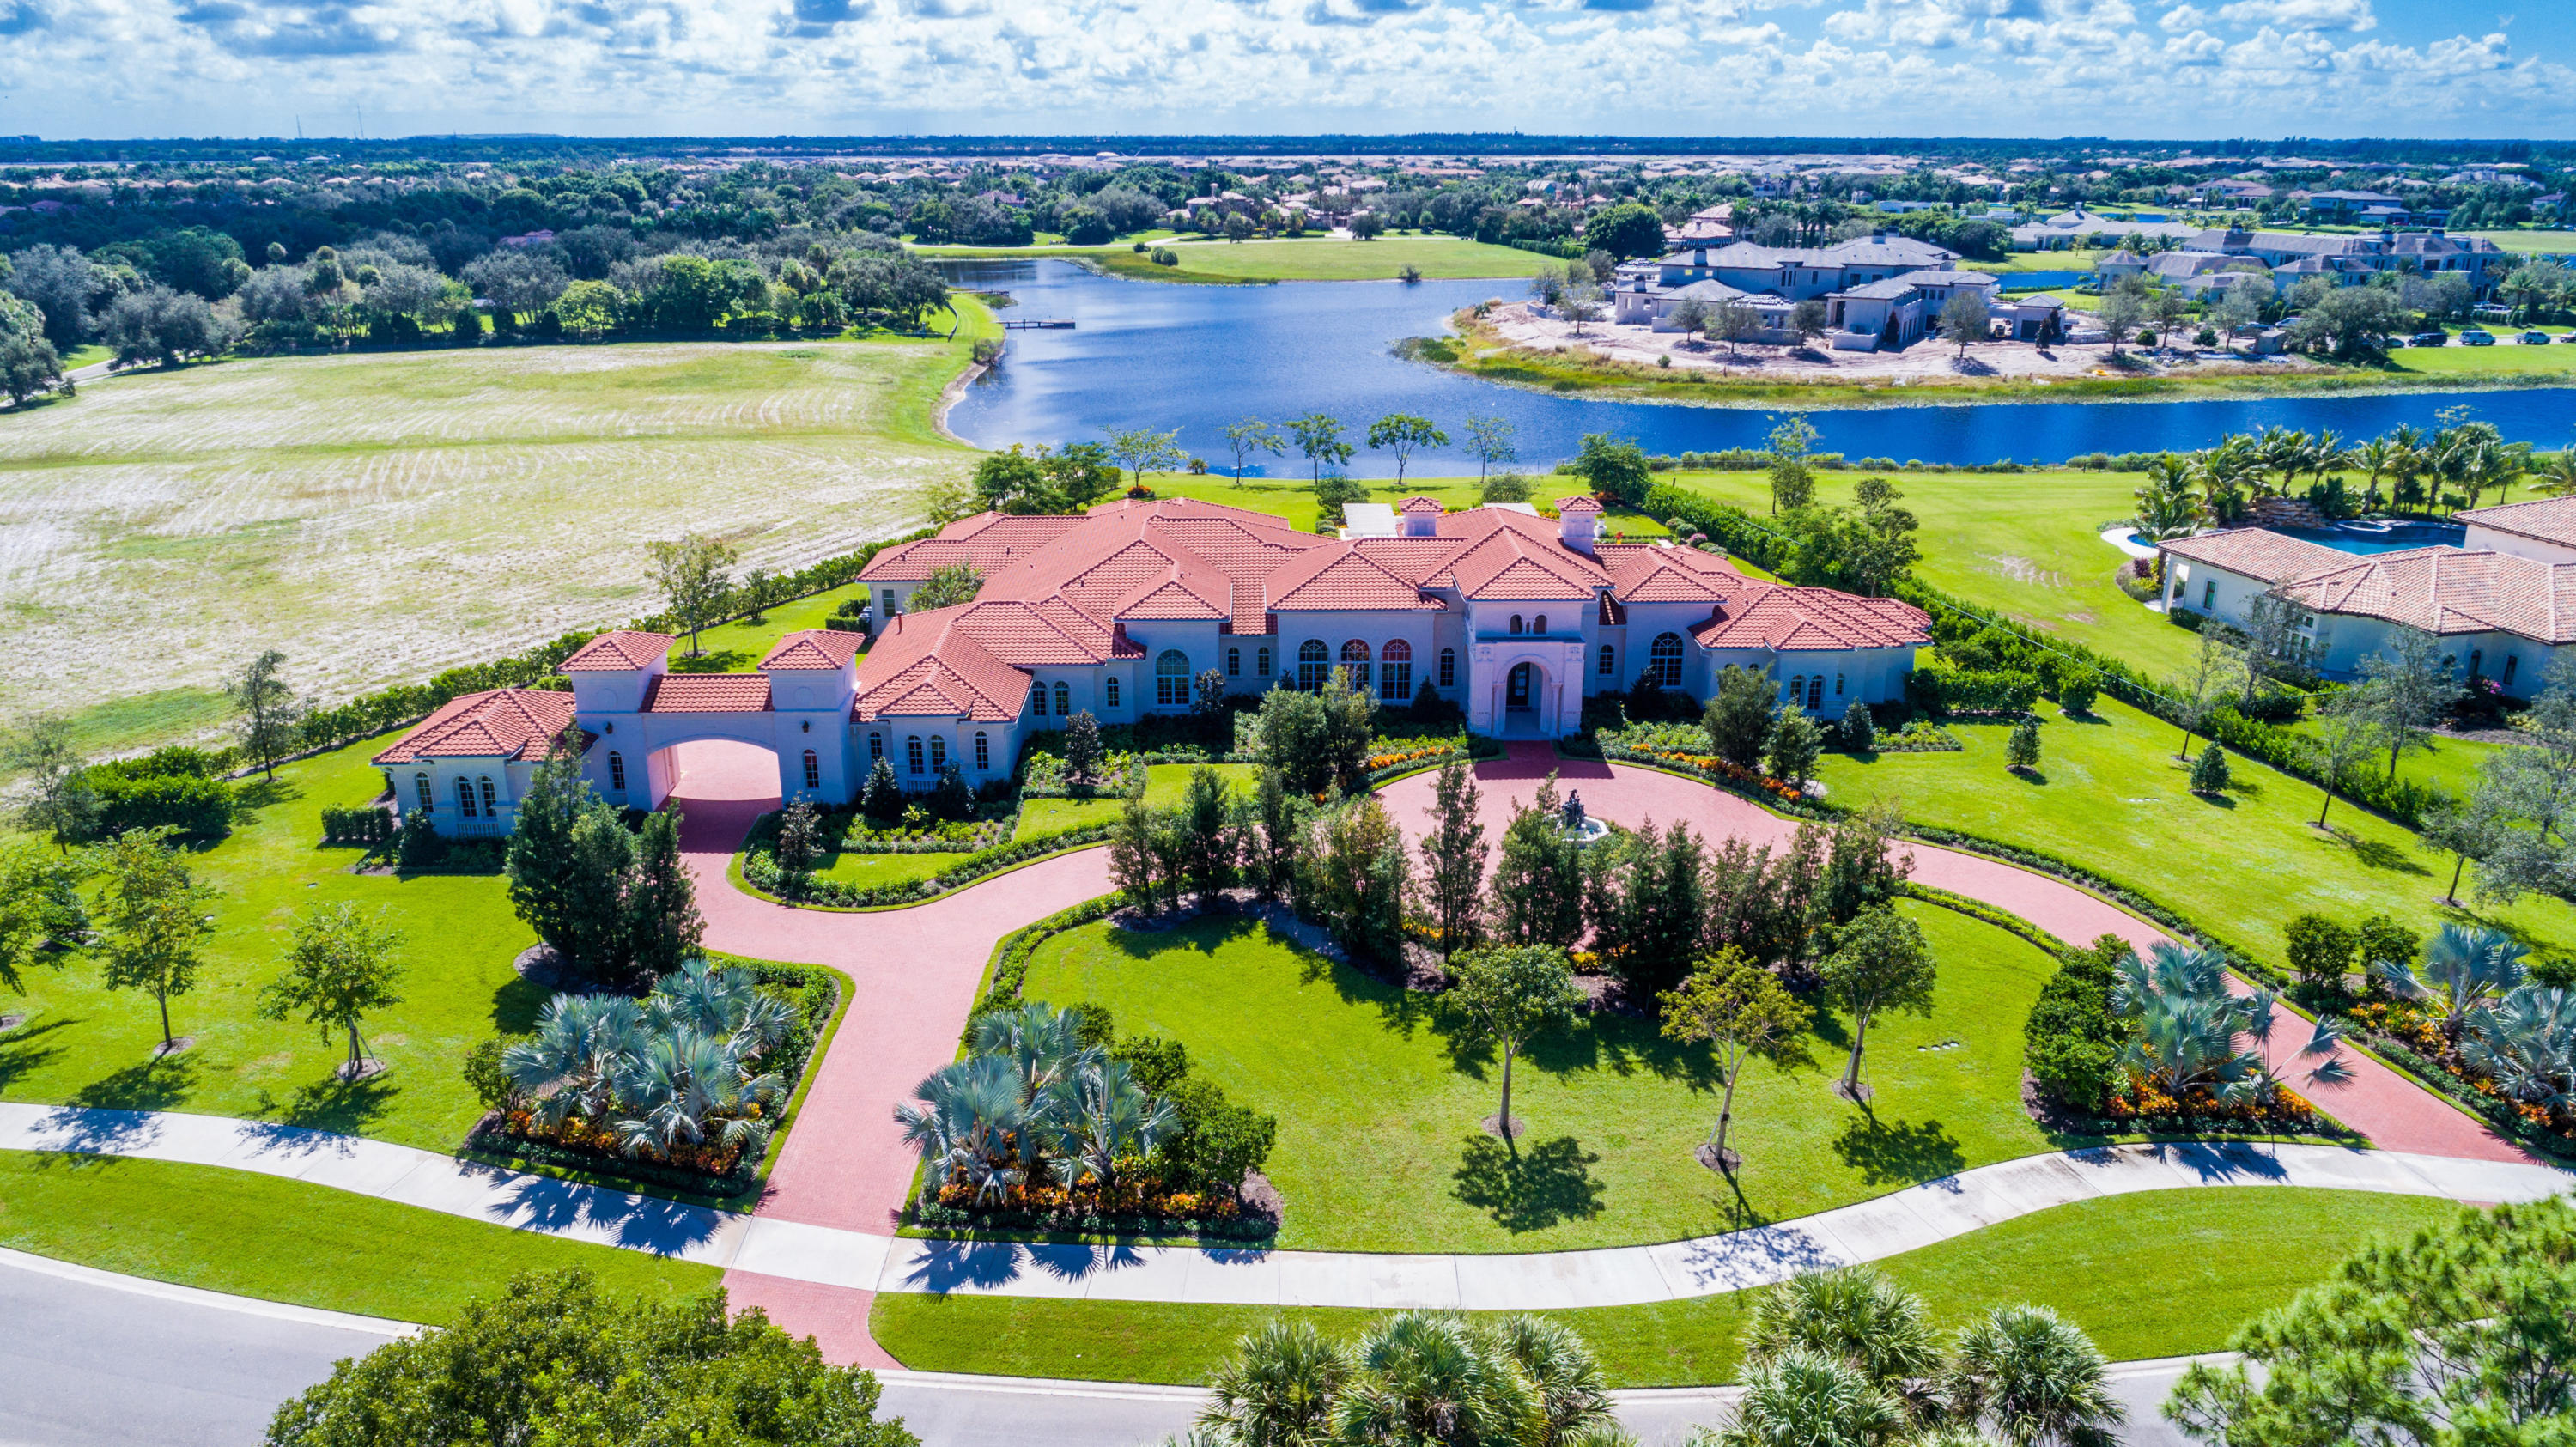 16155 Quiet Vista Circle, Delray Beach, Florida 33446, 6 Bedrooms Bedrooms, ,8.2 BathroomsBathrooms,Single Family,For Sale,Stone Creek Ranch,Quiet Vista,RX-10477069